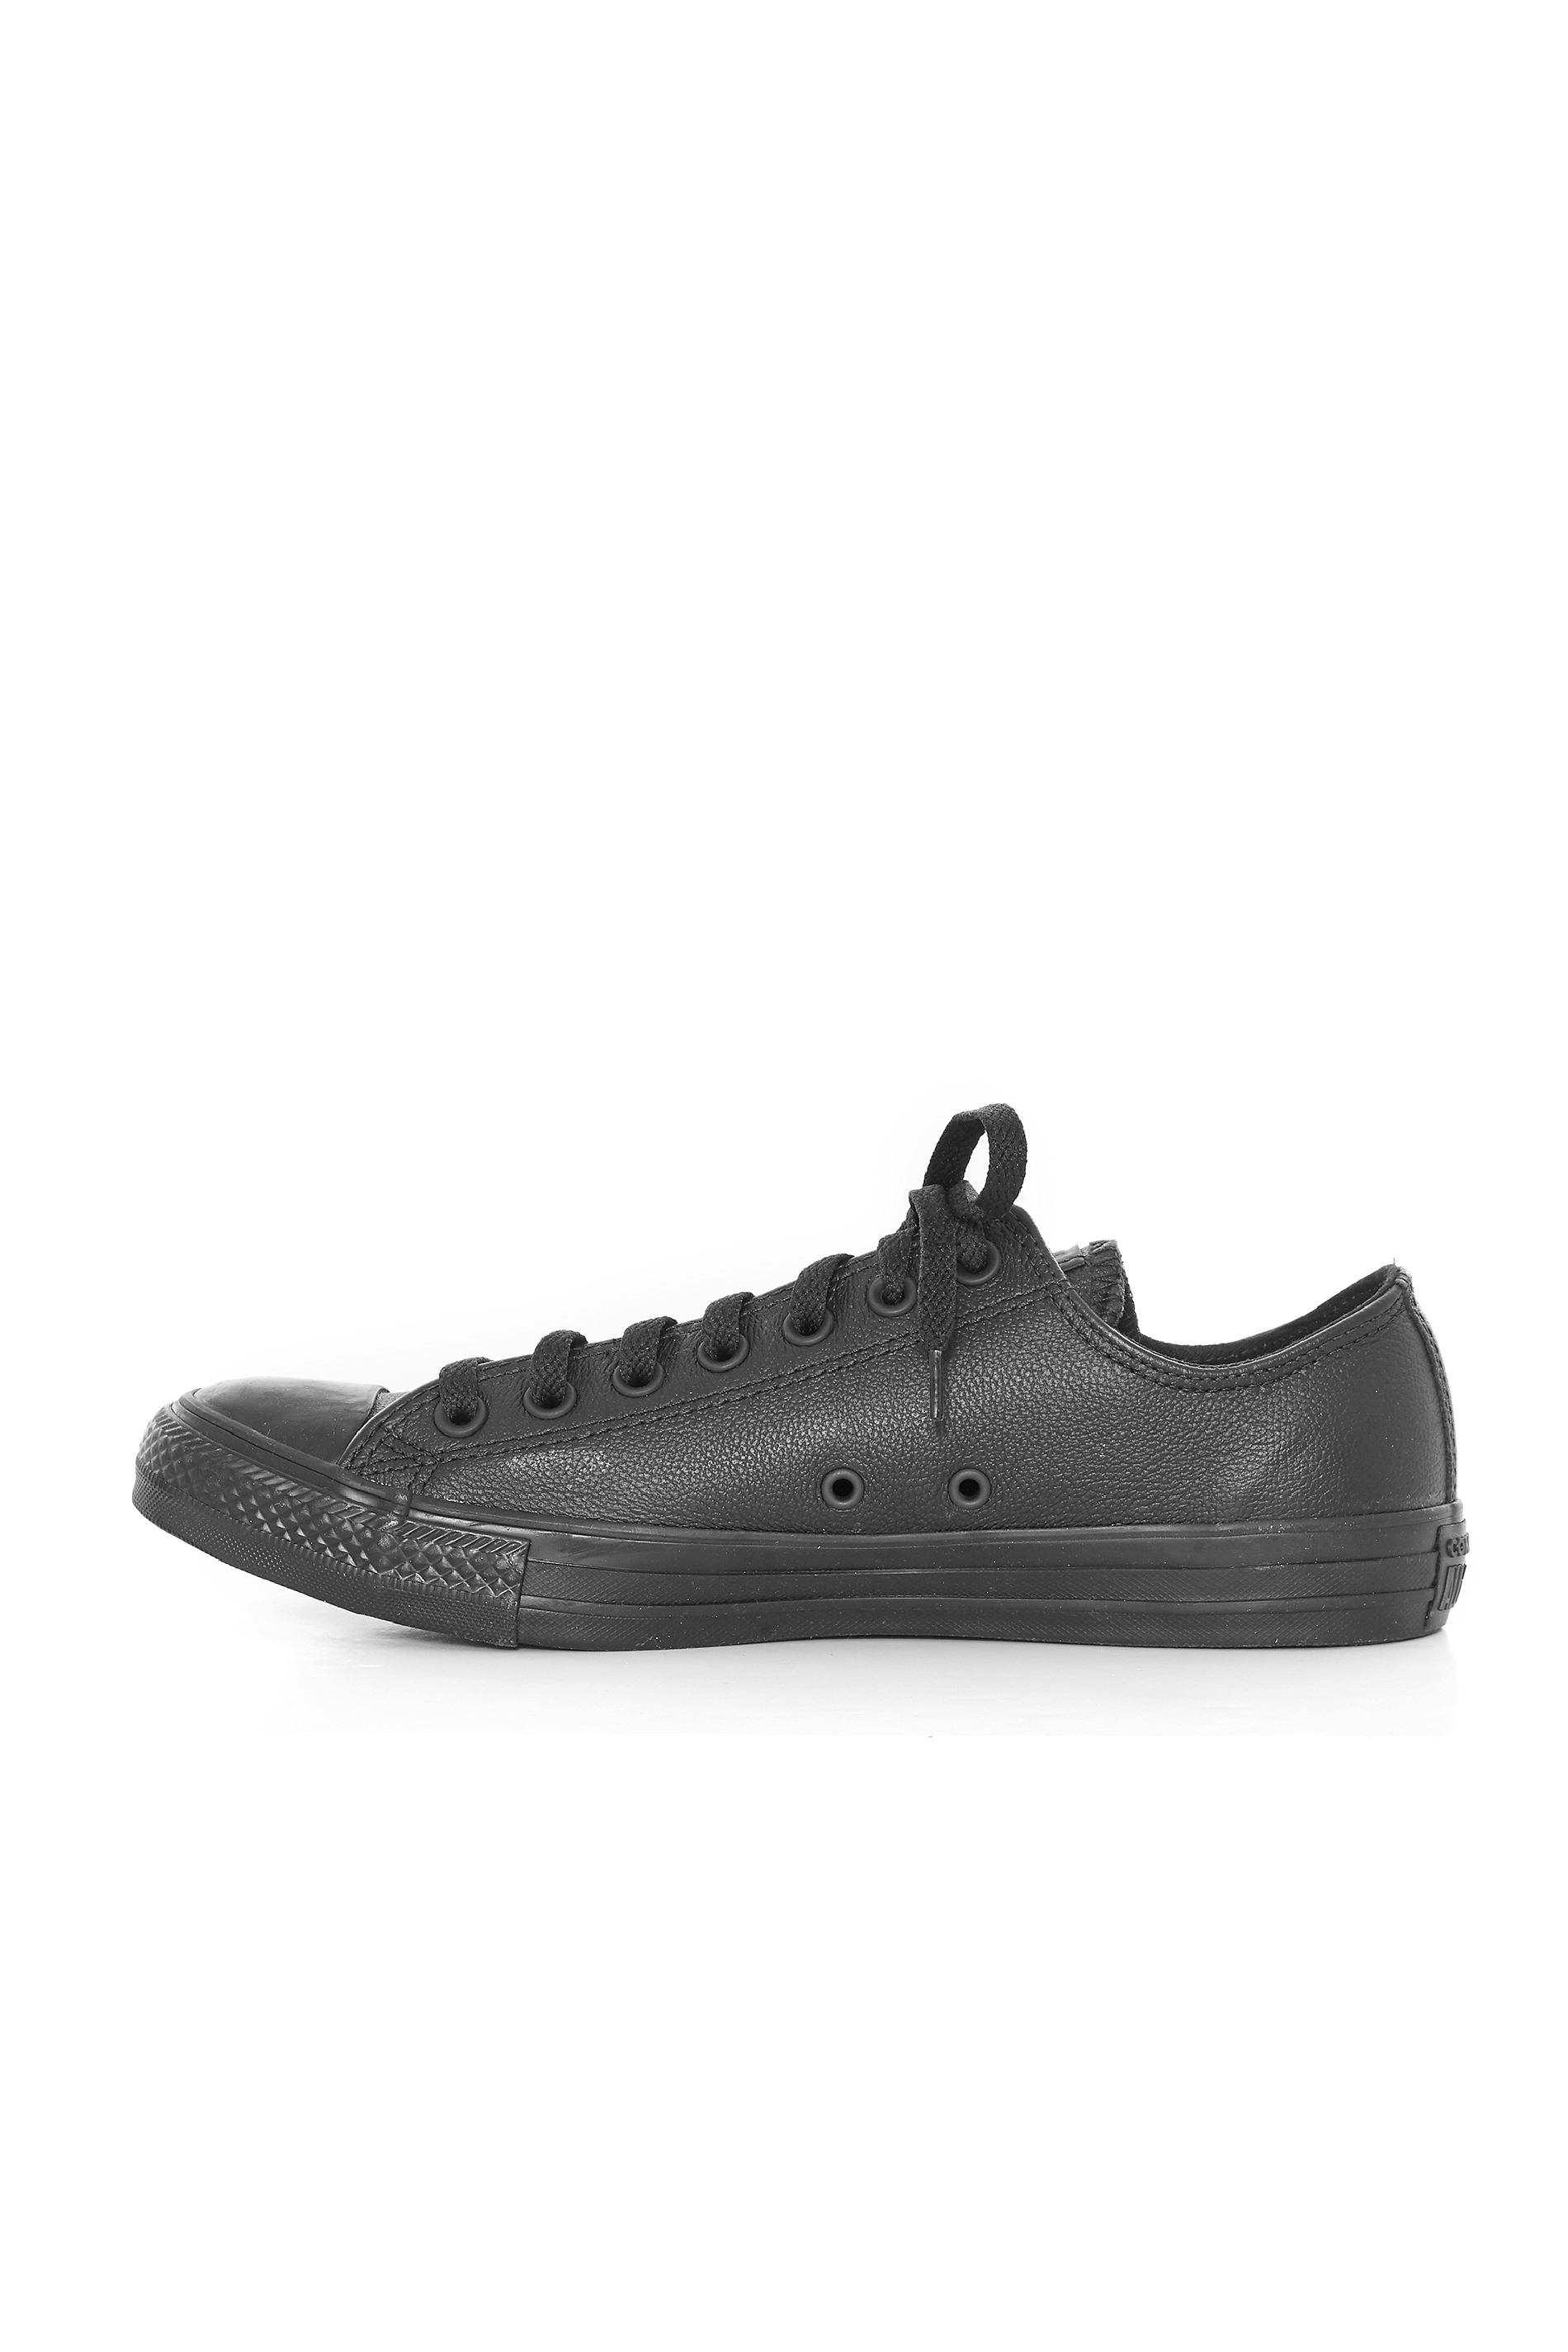 CONVERSE ALL STAR Black & White Leather Ox